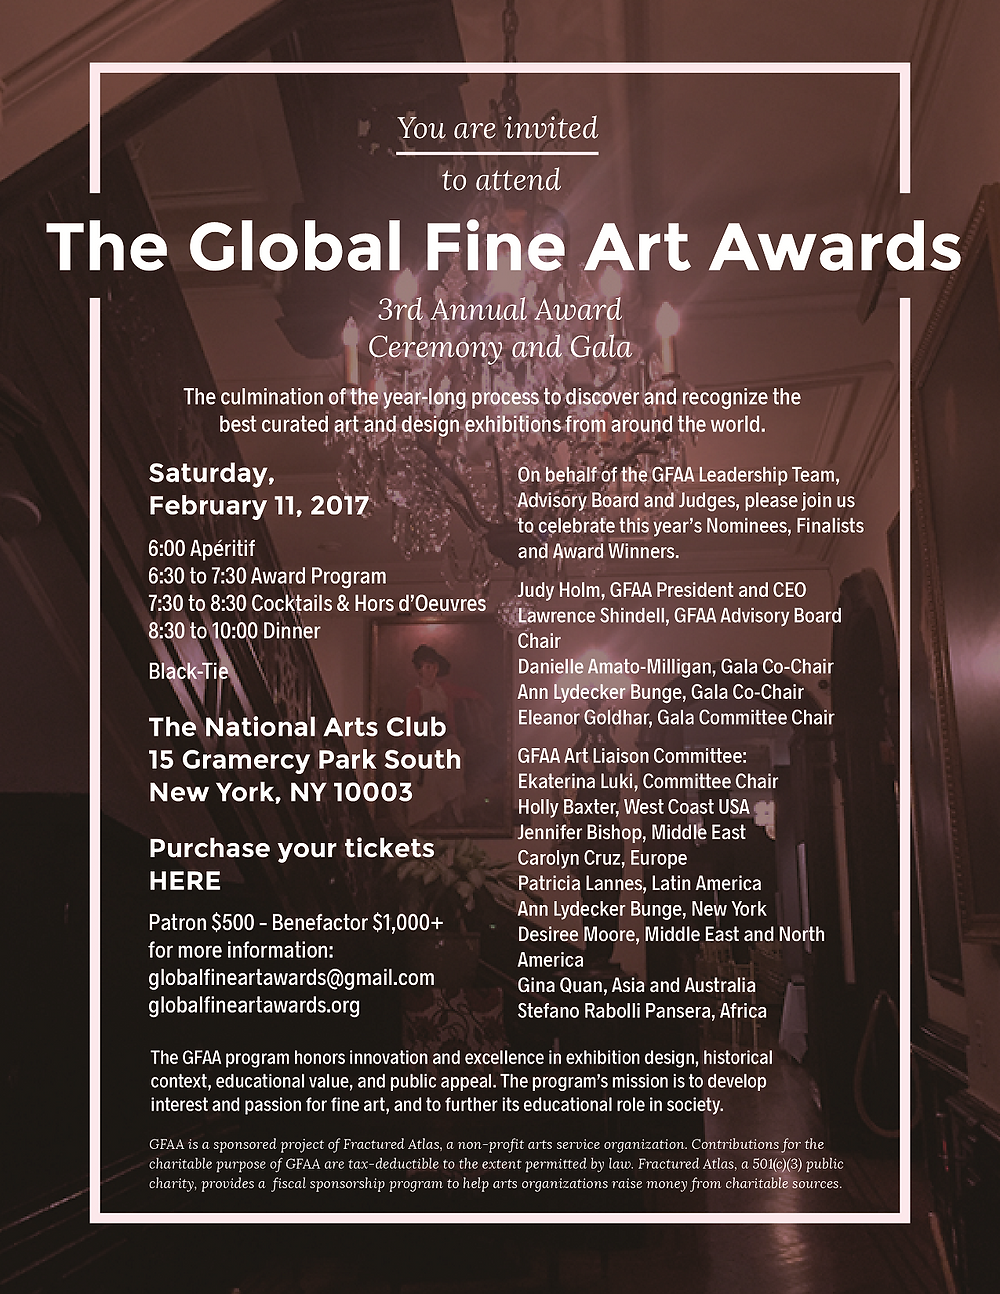 Global Fine Art Awards - The Culture News